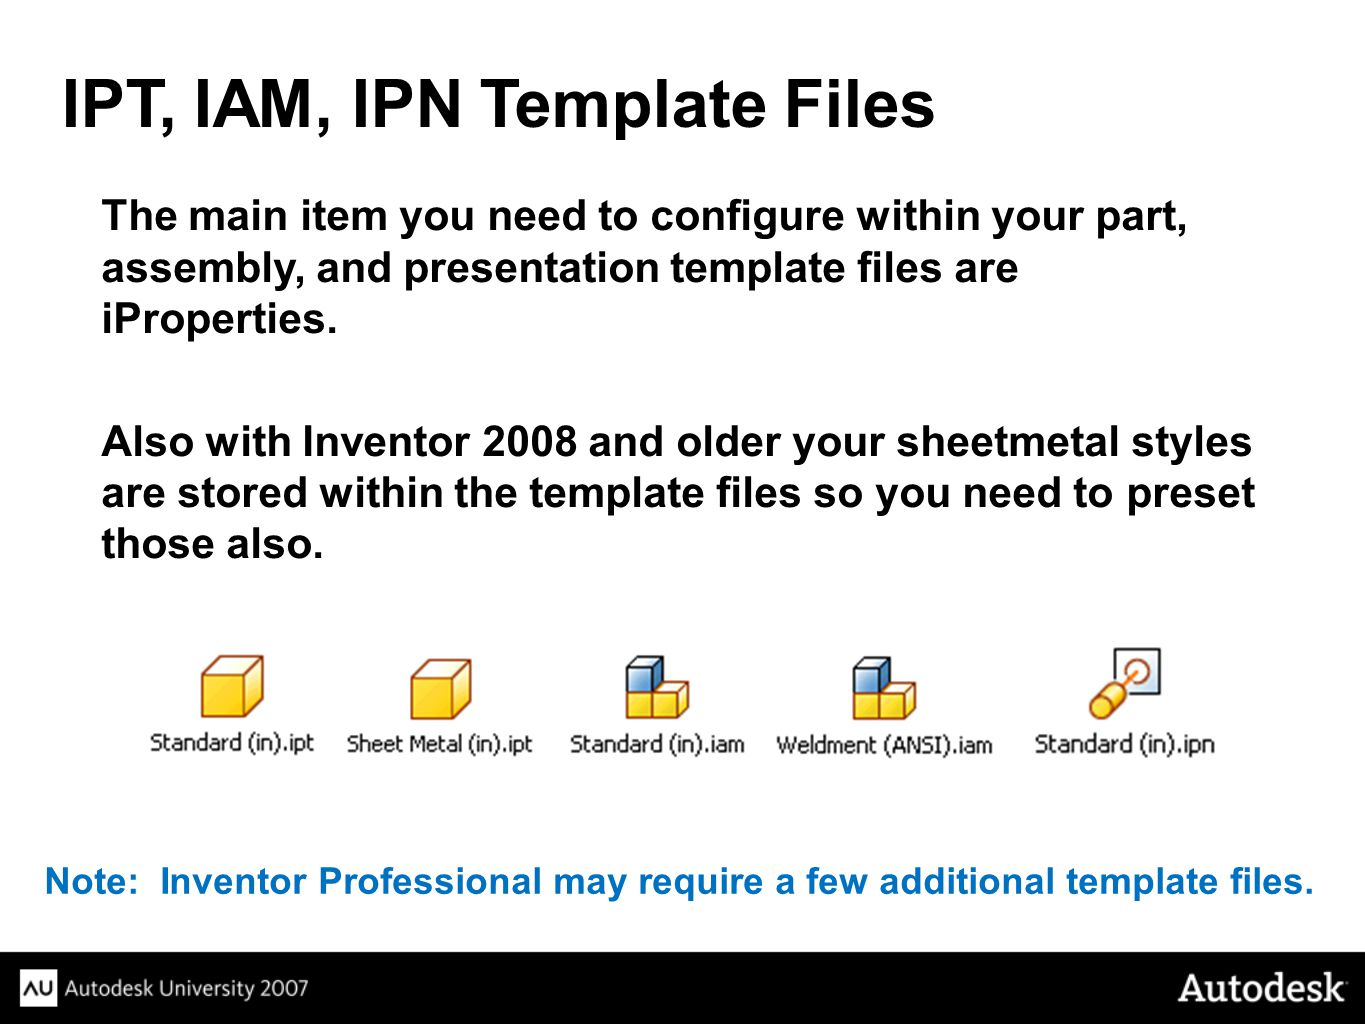 The main item you need to configure within your part, assembly, and presentation template files are iProperties.